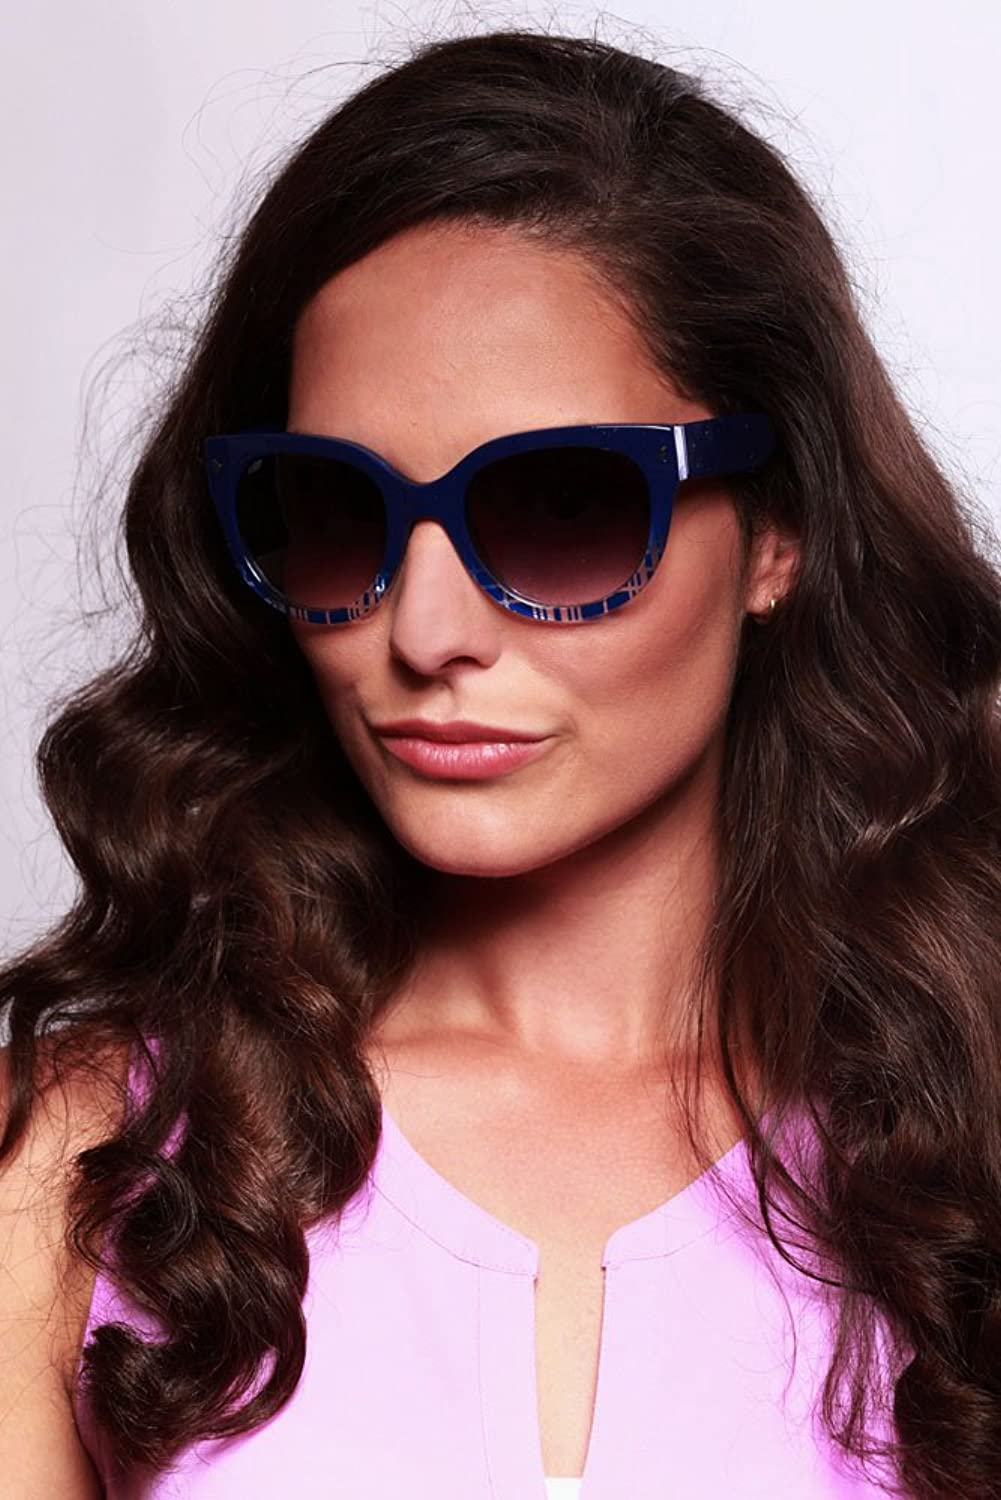 """Edgewater"" Wayfarer Cateye Sunglasses with Patterned Frames for Stylish Women"